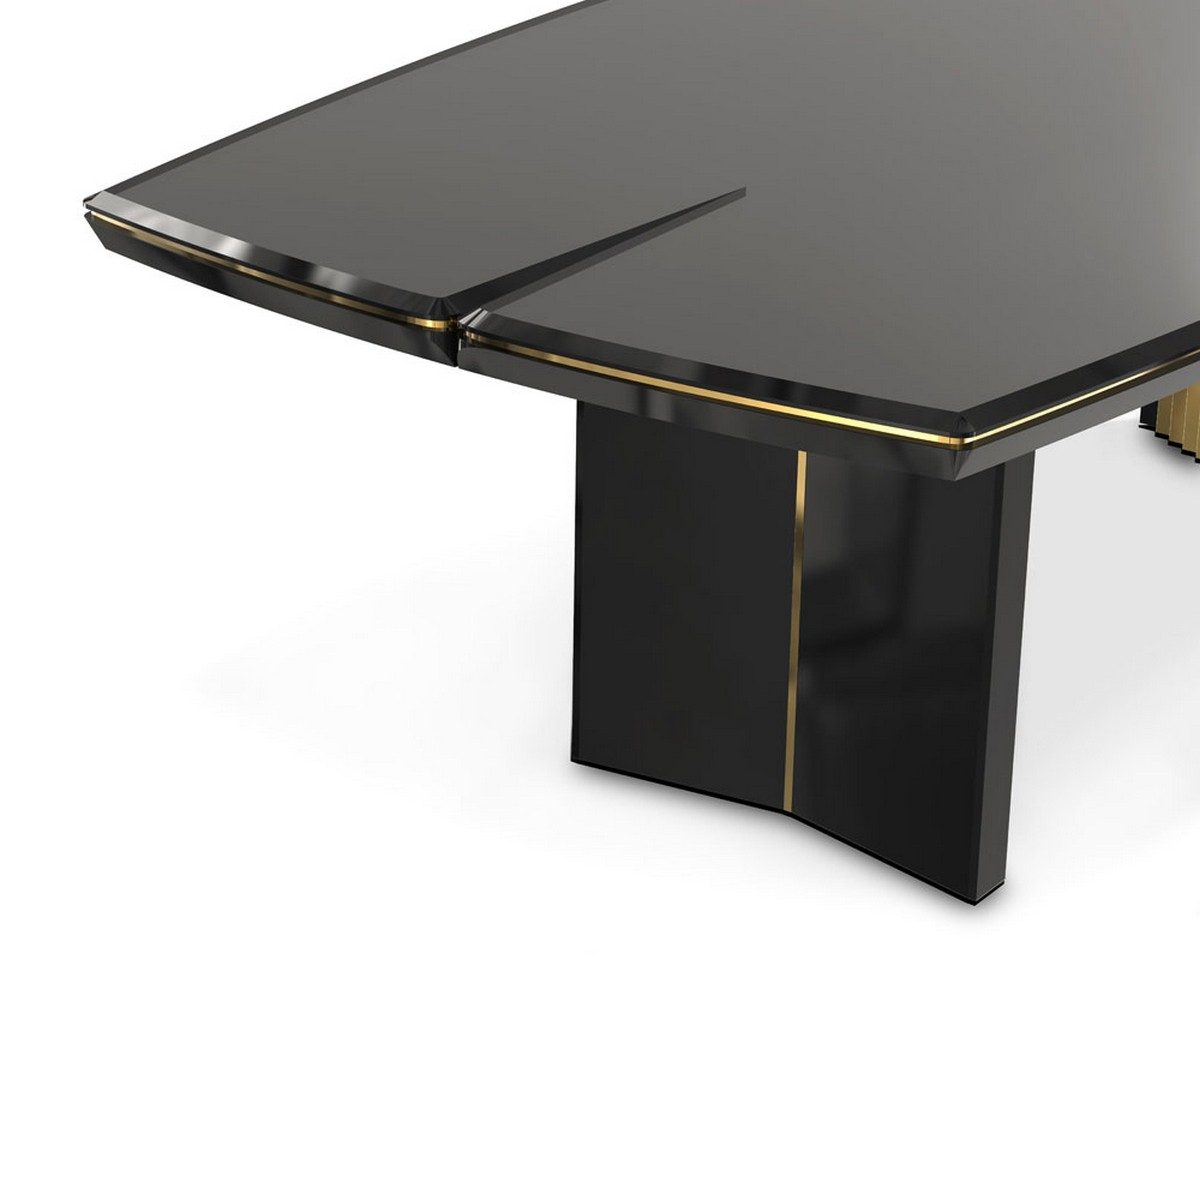 The Prime Example of High End Luxury: The Beyond Console